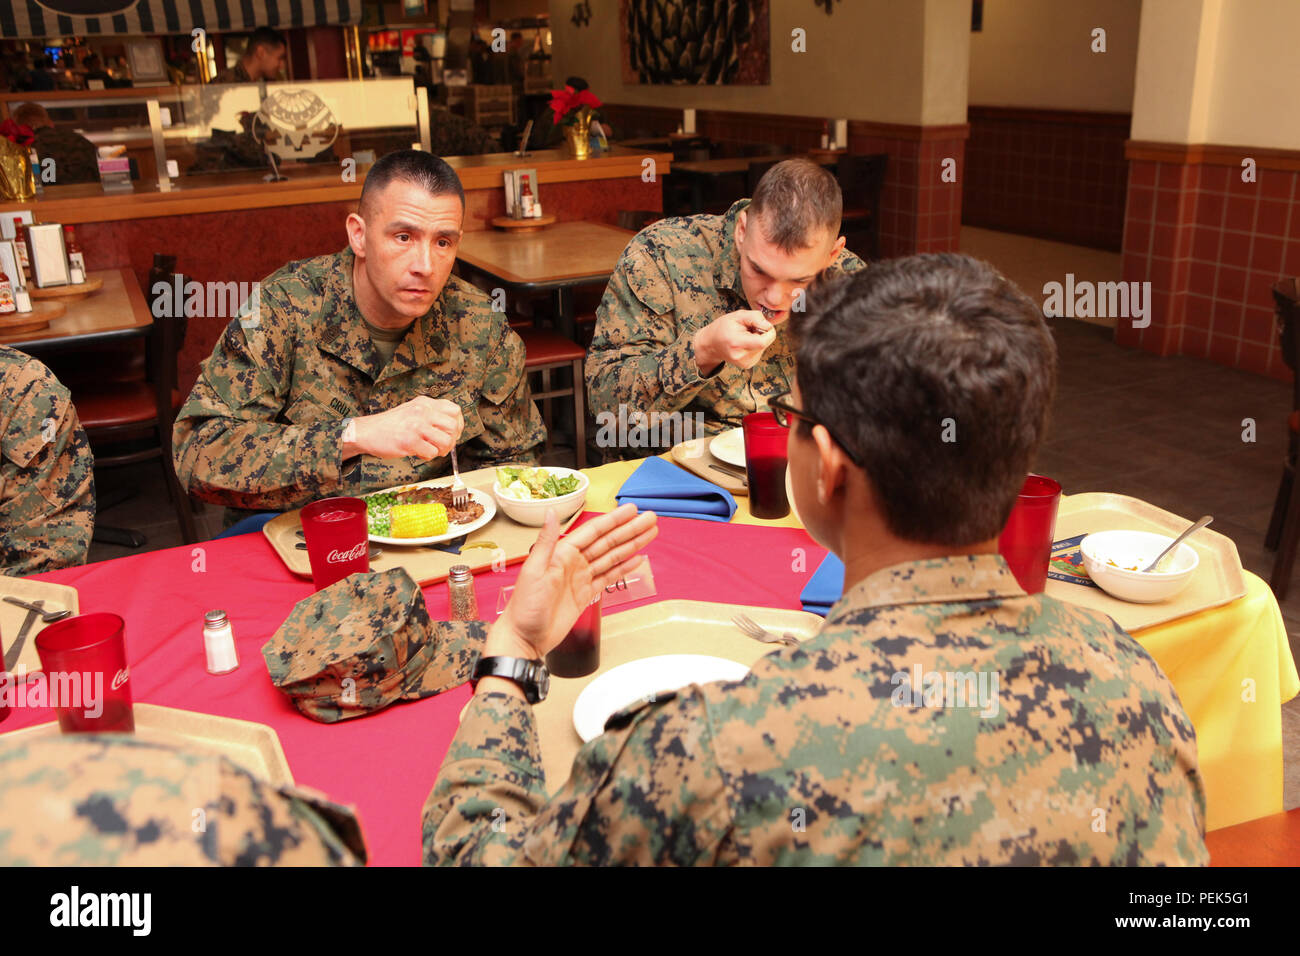 U.S. Marine Corps Installations Command (MCICOM), SgtMaj. Anthony Cruz has lunch with the Marines stationed aboard Marine Corps Air Station (MCAS) Yuma, Ariz., at Dec. 10, 2015. MajGen. Charles Hudson and SgtMaj. Cruz socializes and mentors the Marines of the current generation. (U.S. Marine Corps photo taken by LCpl. AaronJames B. Vinculado/Released) - Stock Image